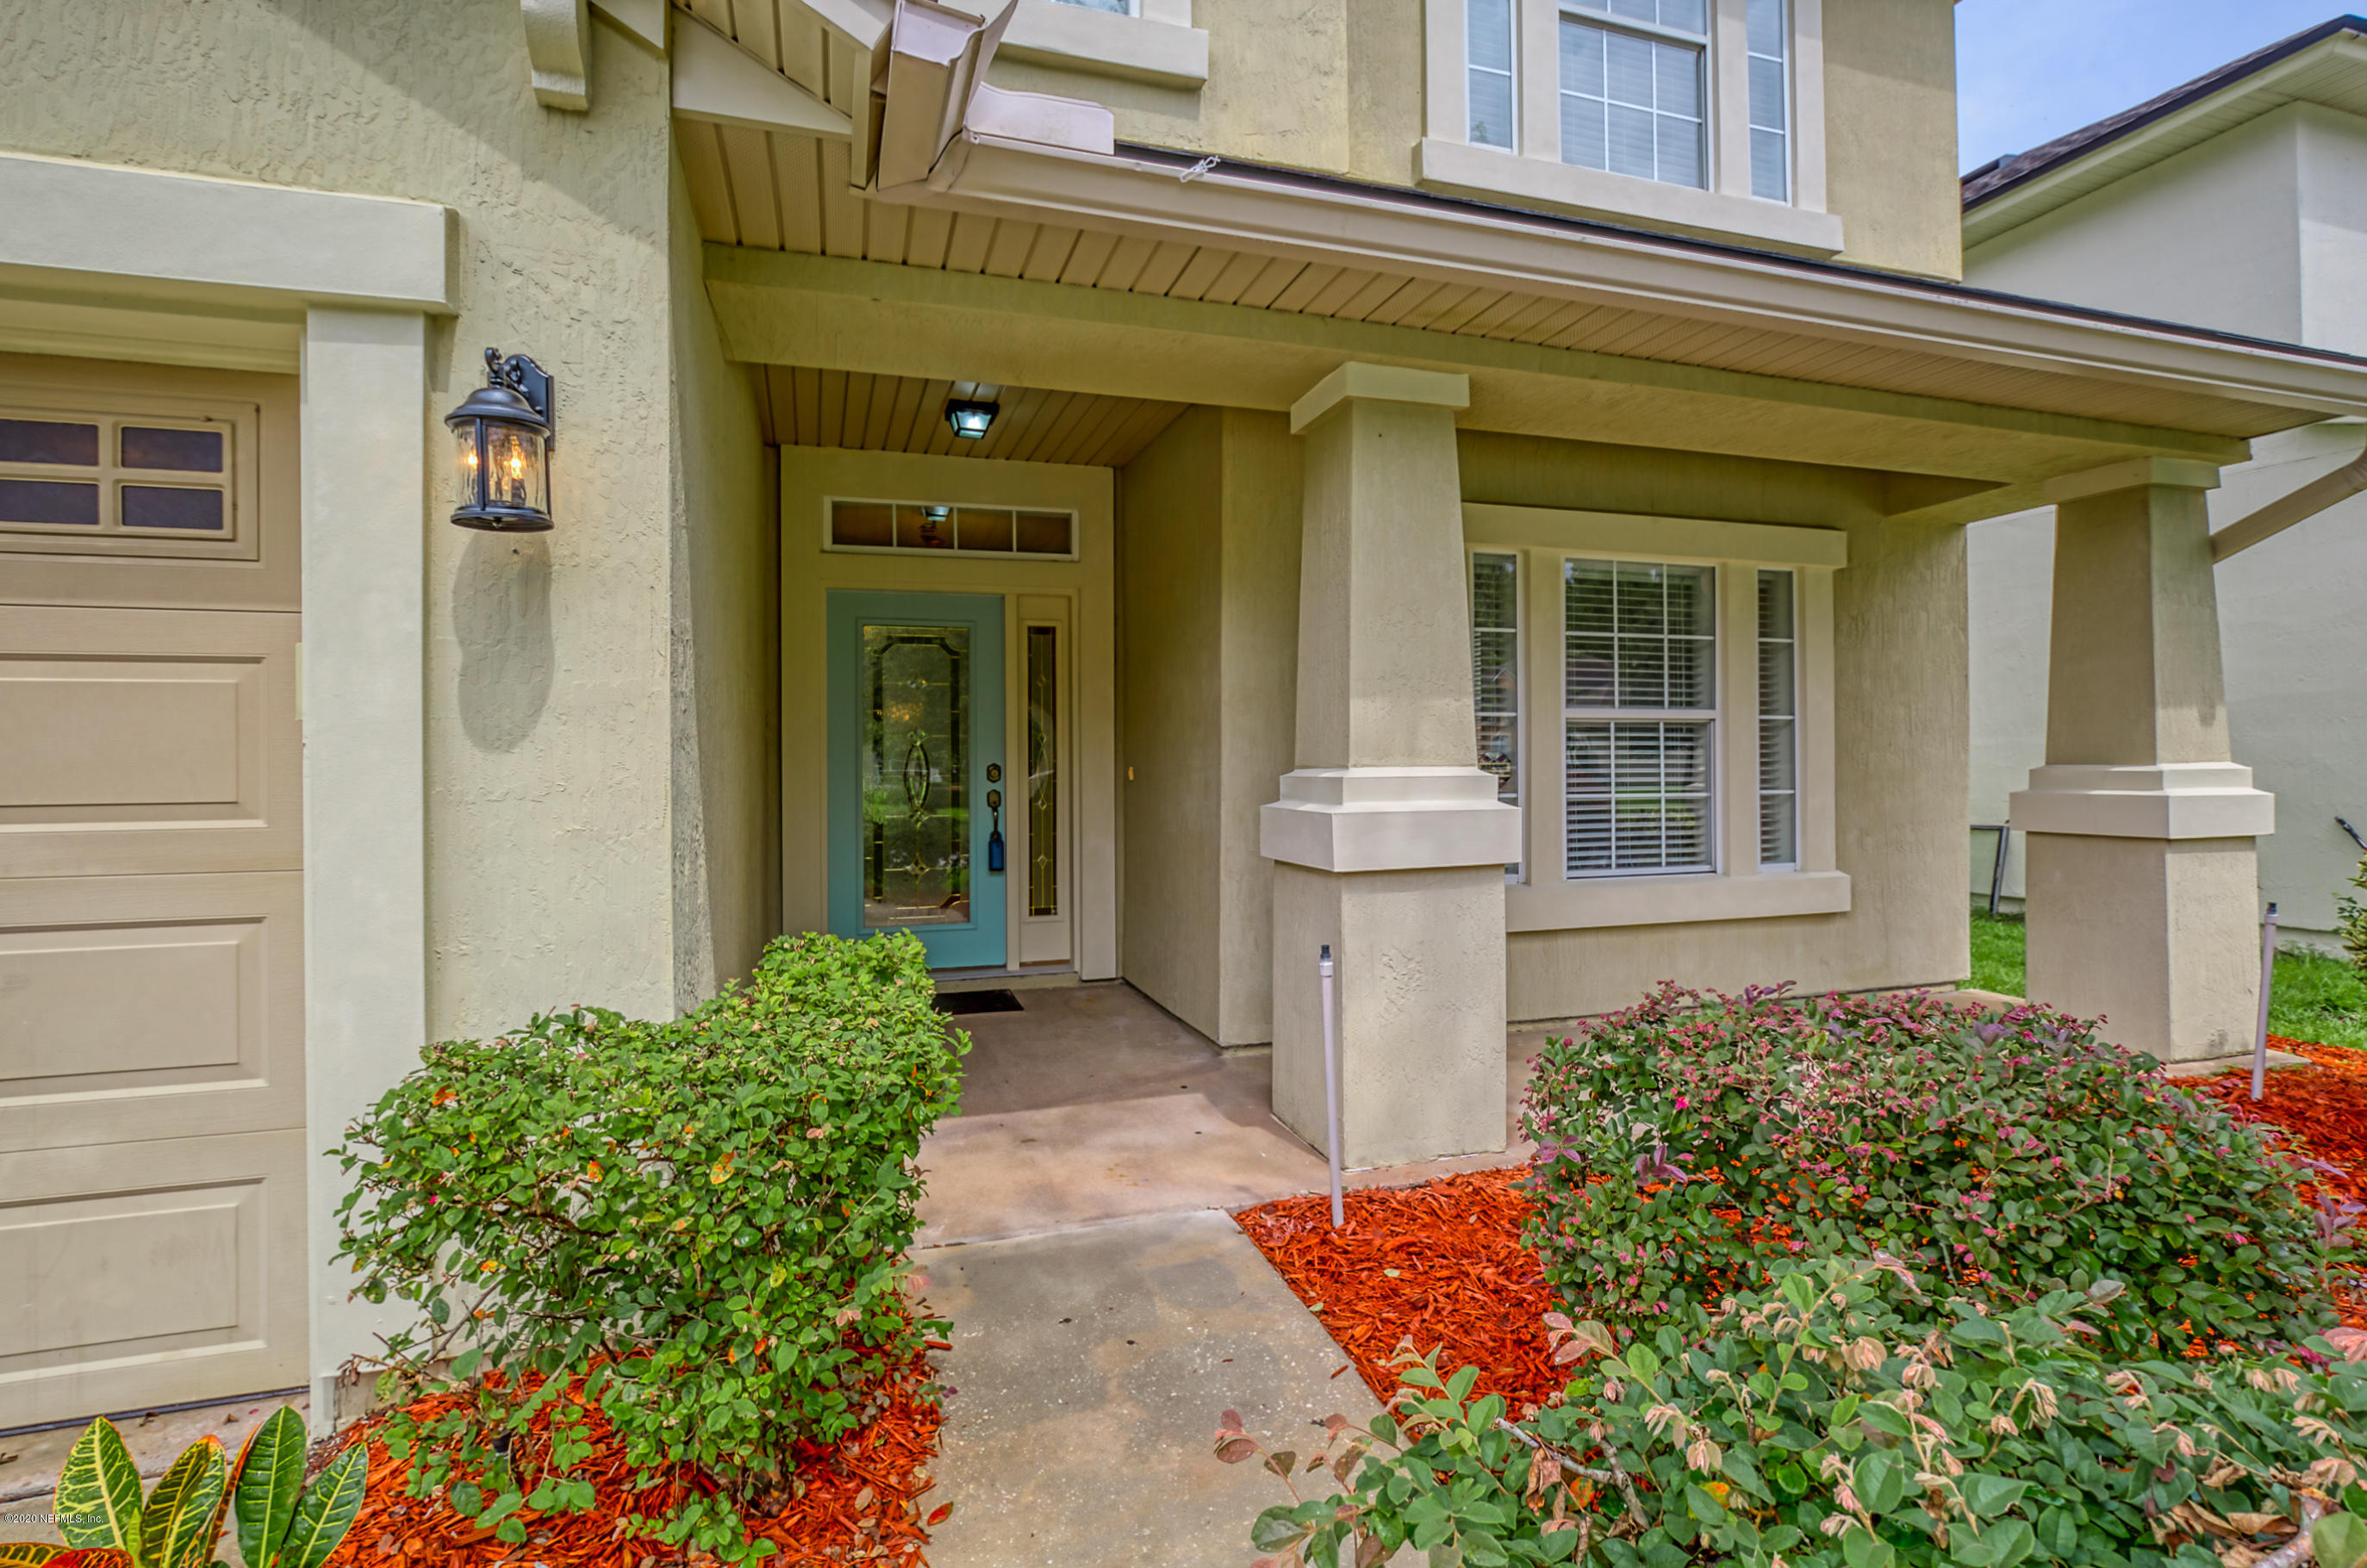 2020 CYPRESS BLUFF, ORANGE PARK, FLORIDA 32003, 4 Bedrooms Bedrooms, ,3 BathroomsBathrooms,Residential,For sale,CYPRESS BLUFF,1072923